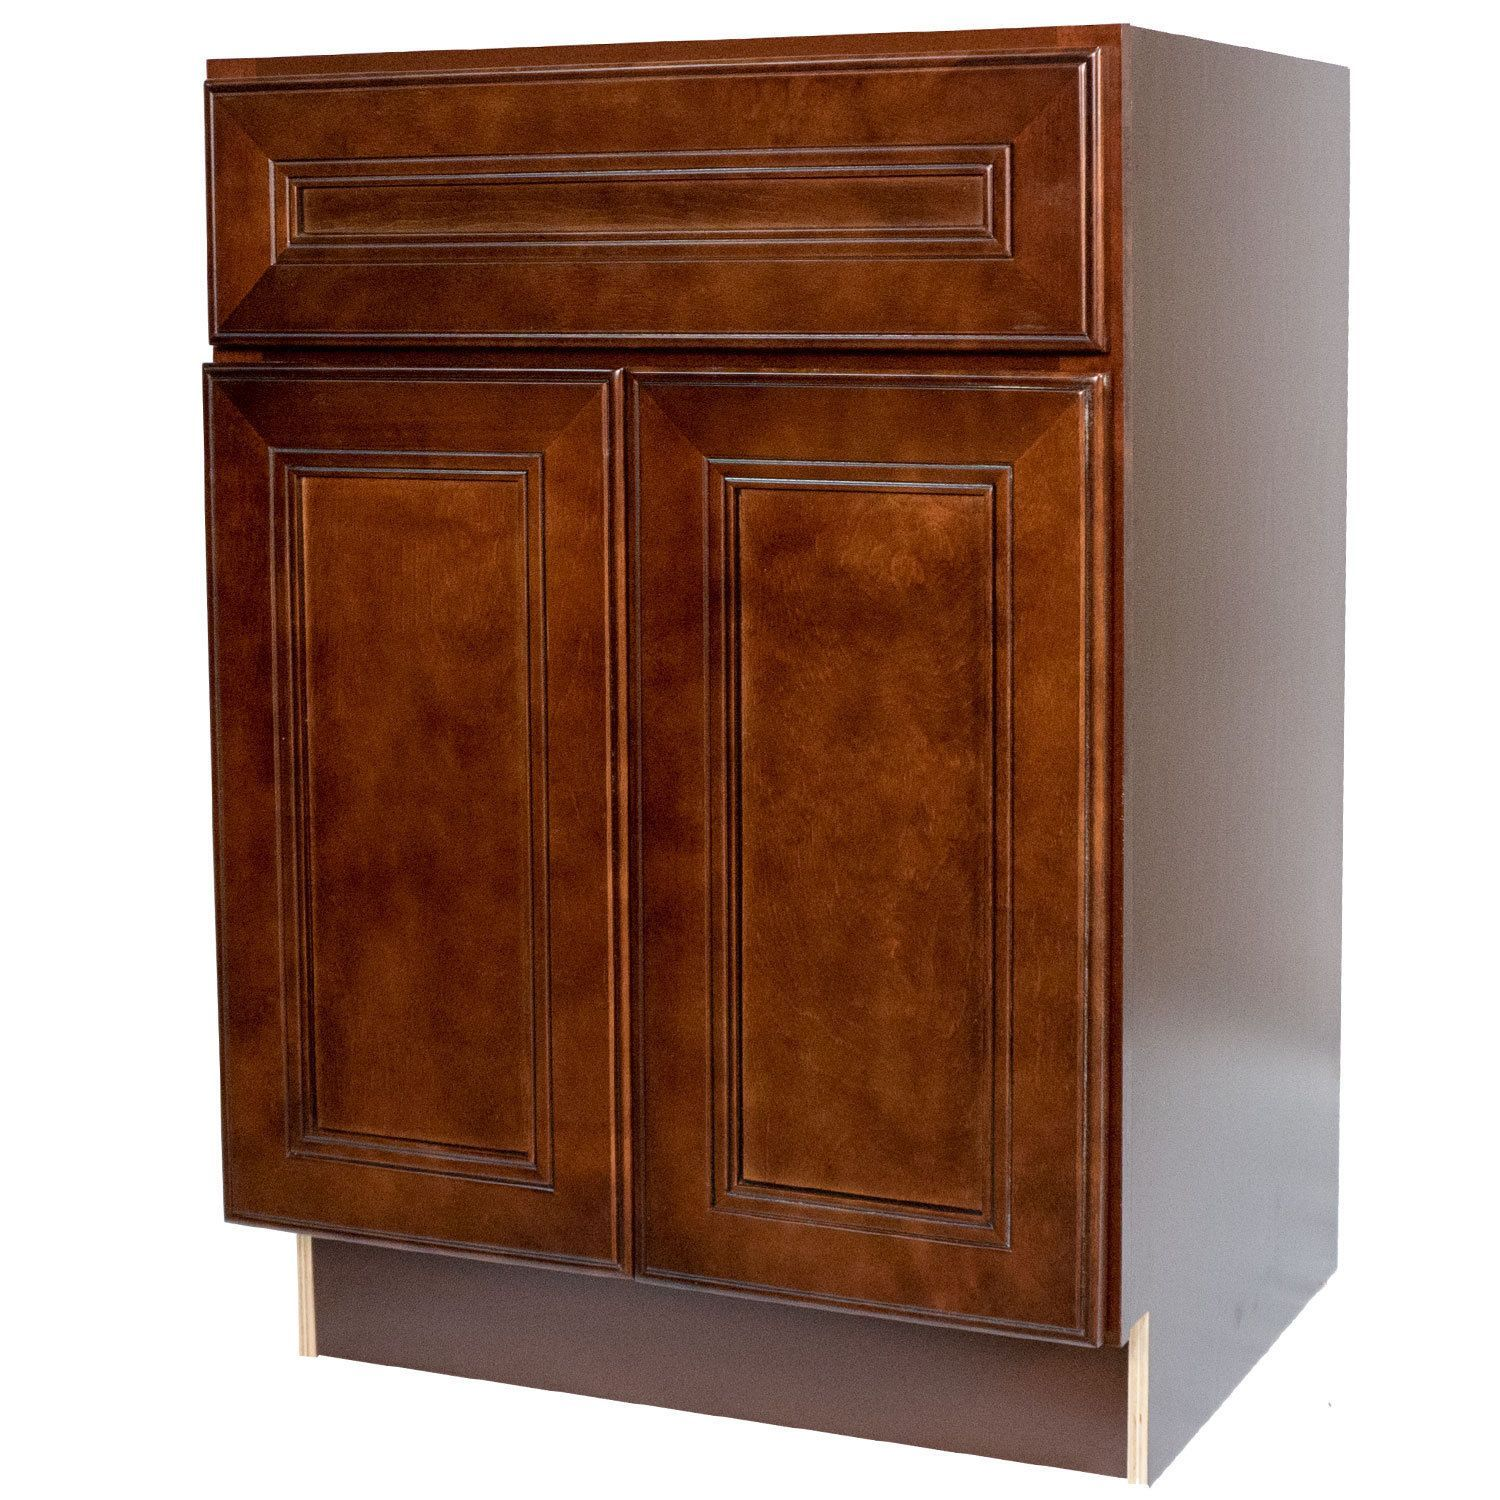 Everyday Cabinets Leo Saddle Cherrymahogany 30Inch Bathroom Mesmerizing Cherry Bathroom Vanity Design Inspiration